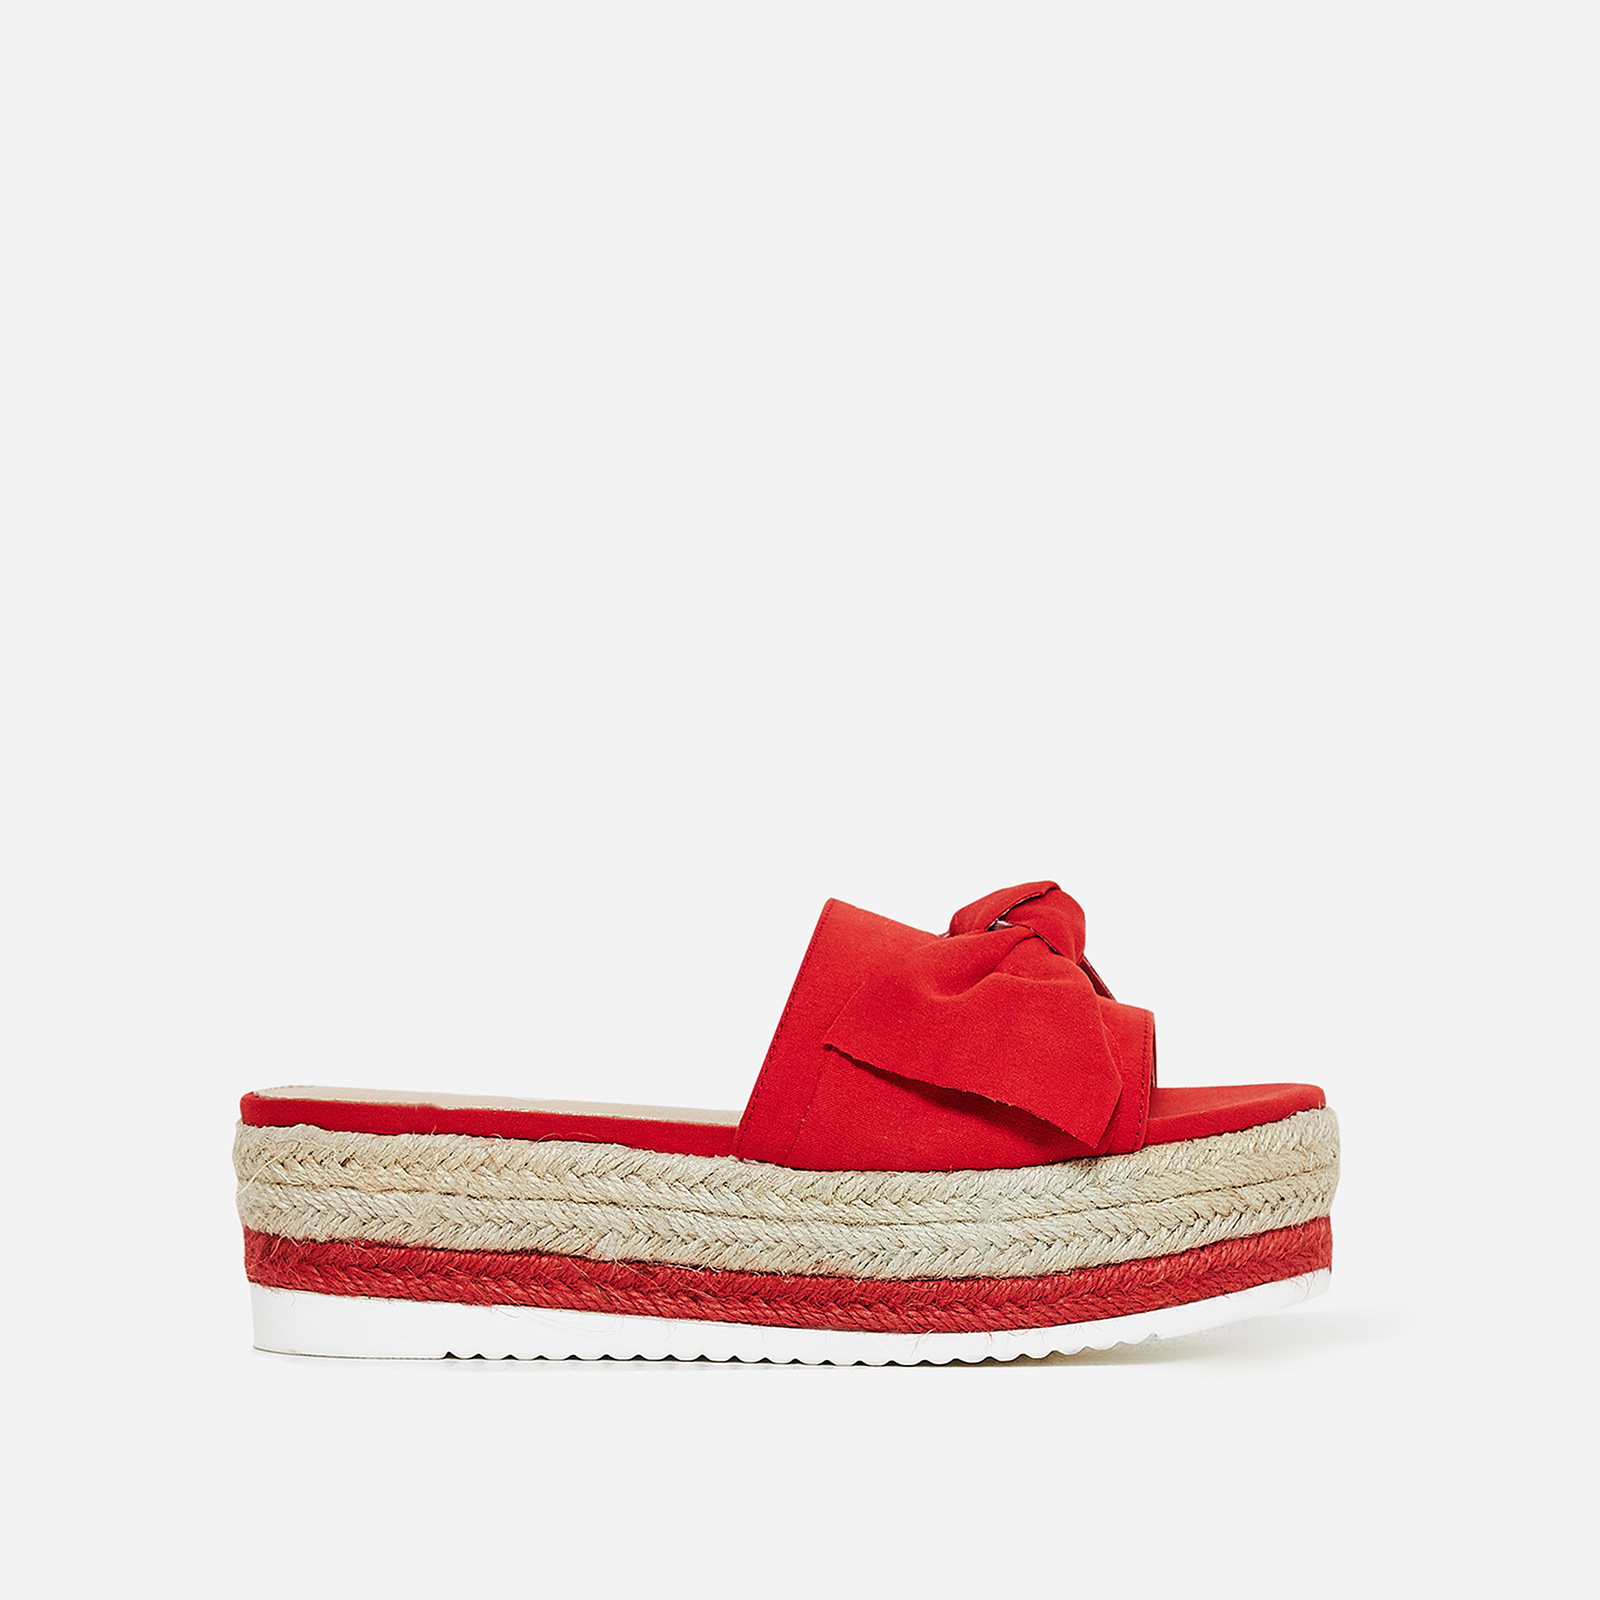 Fergie Bow Detail Espadrille Slider In Red Faux Suede